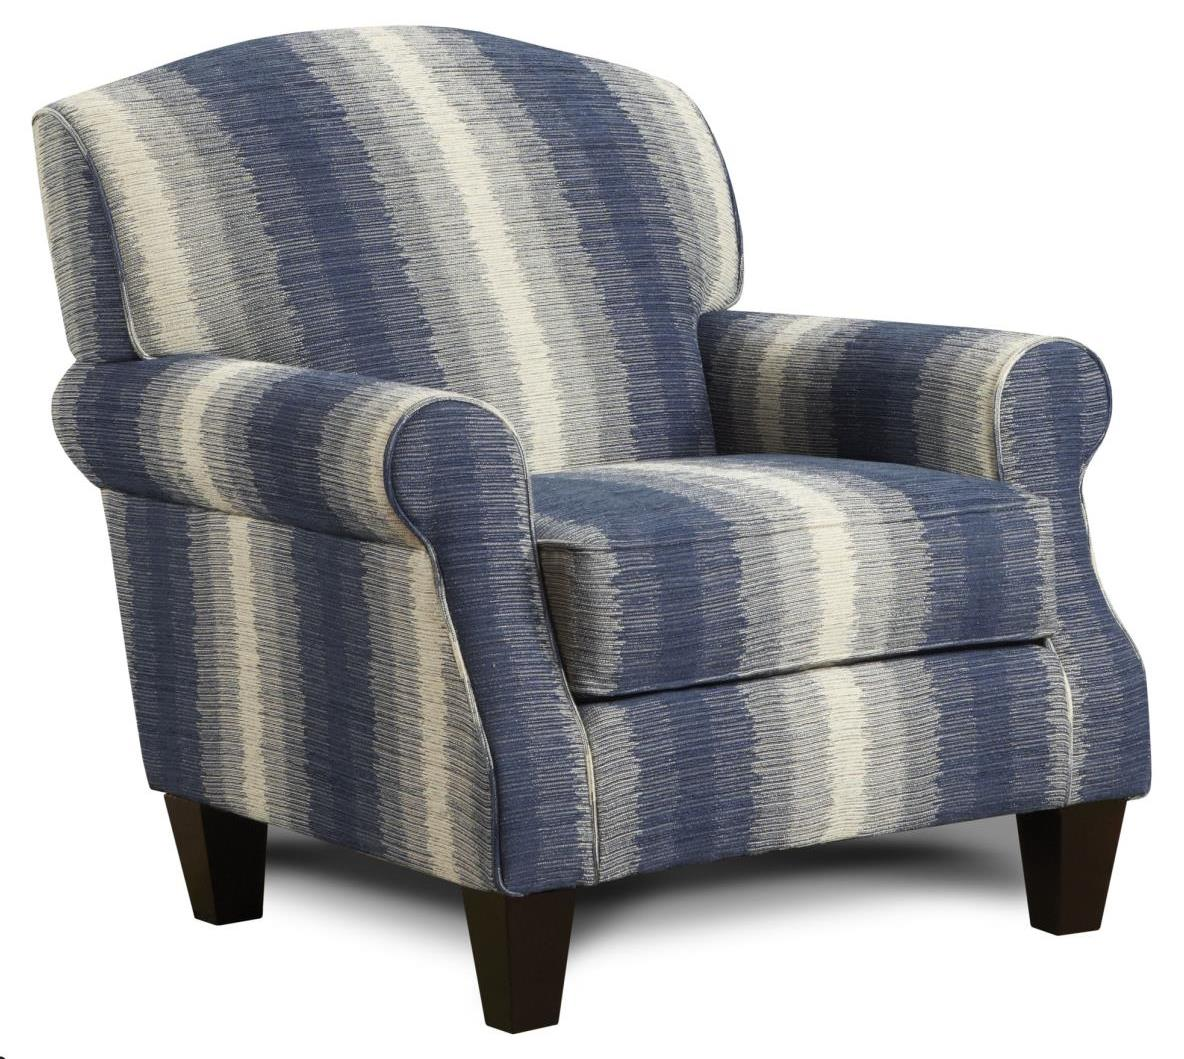 Fusion Furniture 532 Accent Chair - Item Number: 532Weimart Twilight